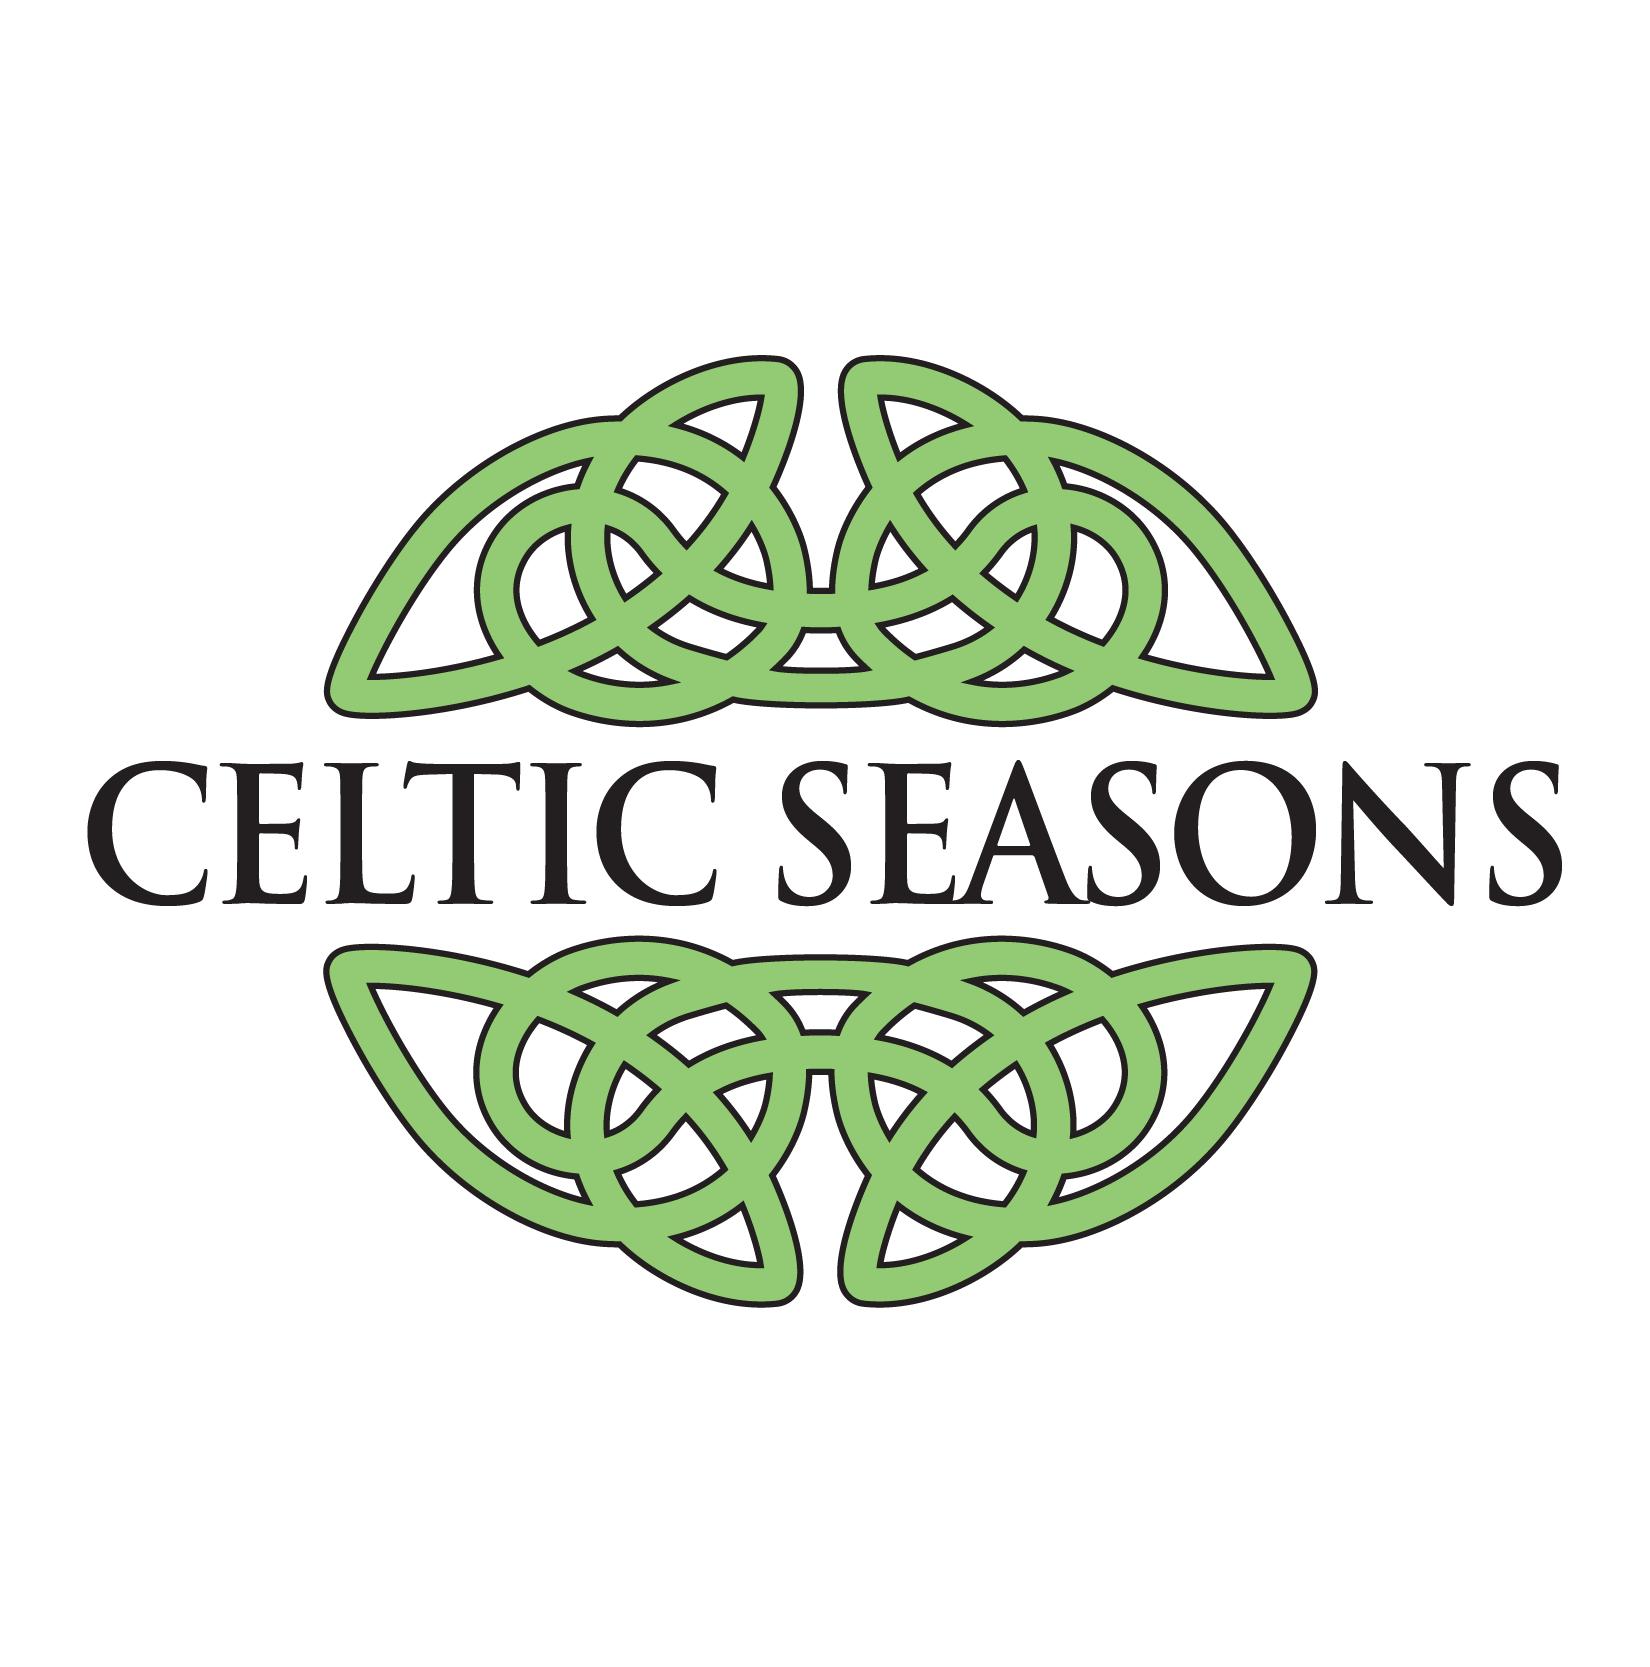 Celtic Seasons - A unique vendor of quality gifts, jewelry, and assorted Celtic goods.